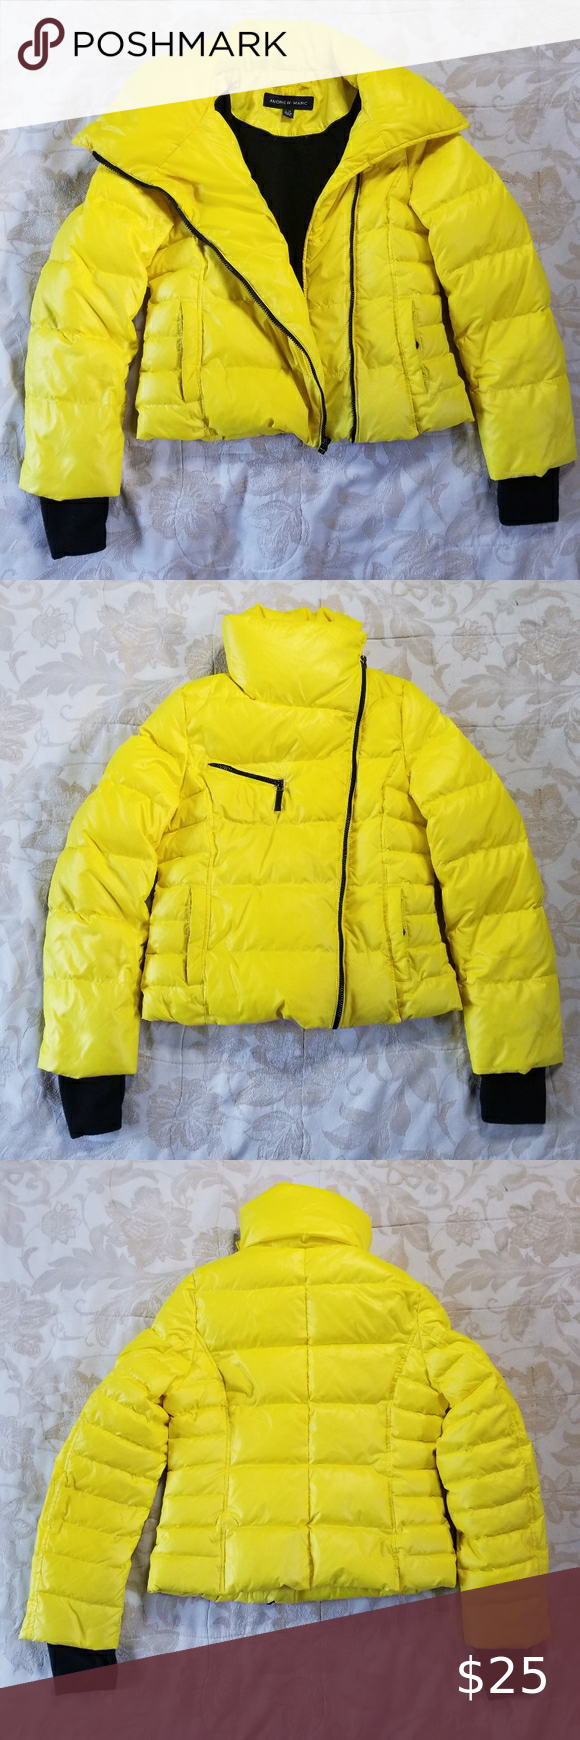 Y2k Style Cropped Yellow Puffer Jacket Down Xs S Yellow Puffer Jacket Black Puffer Jacket Puffer Jackets [ 1740 x 580 Pixel ]